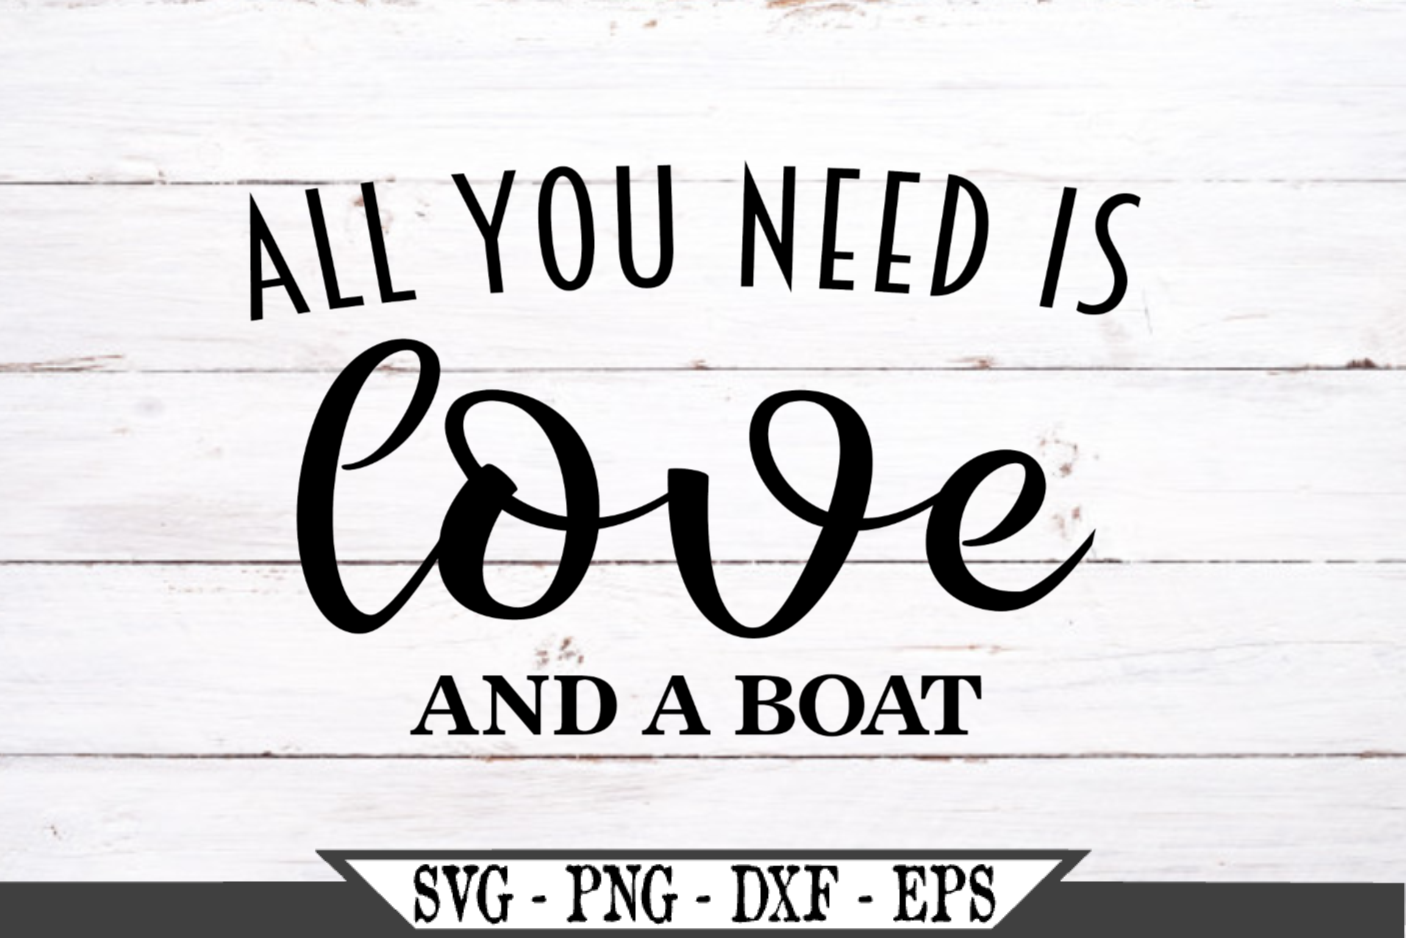 All You Need Is Love And A Boat SVG example image 2